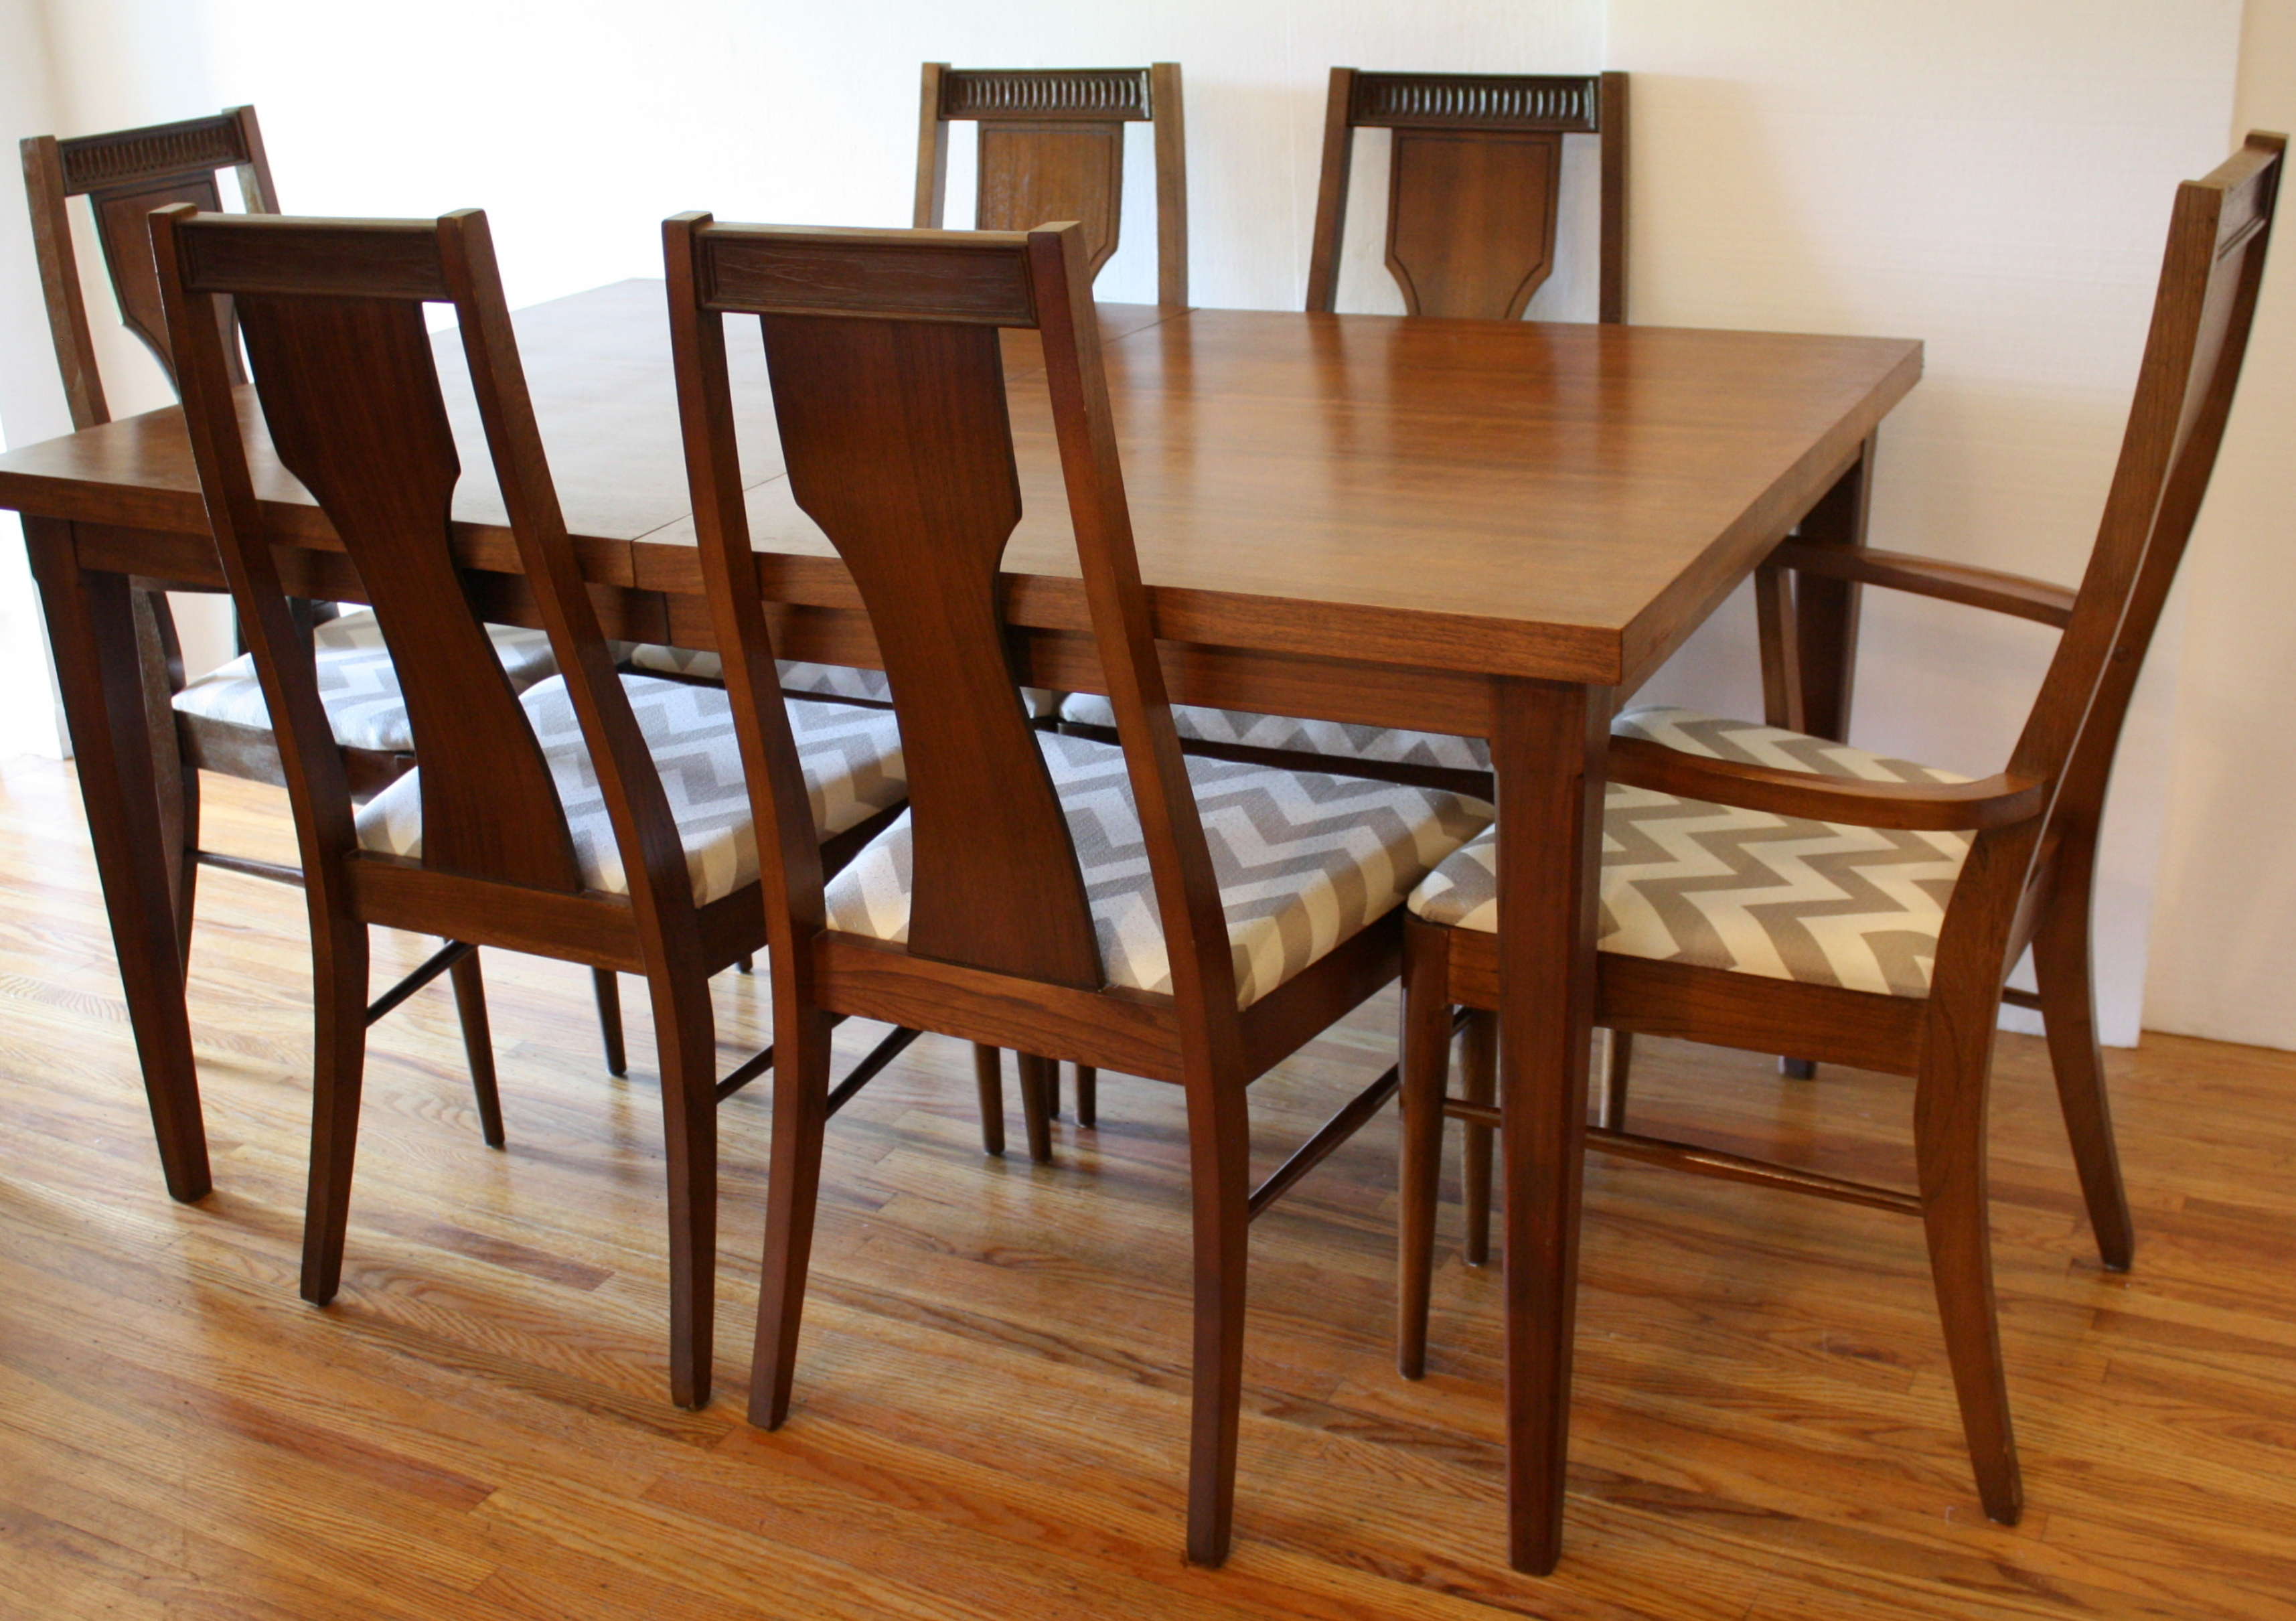 Mcm Dining Table 3 Exytnsion Leaves 1 JPG